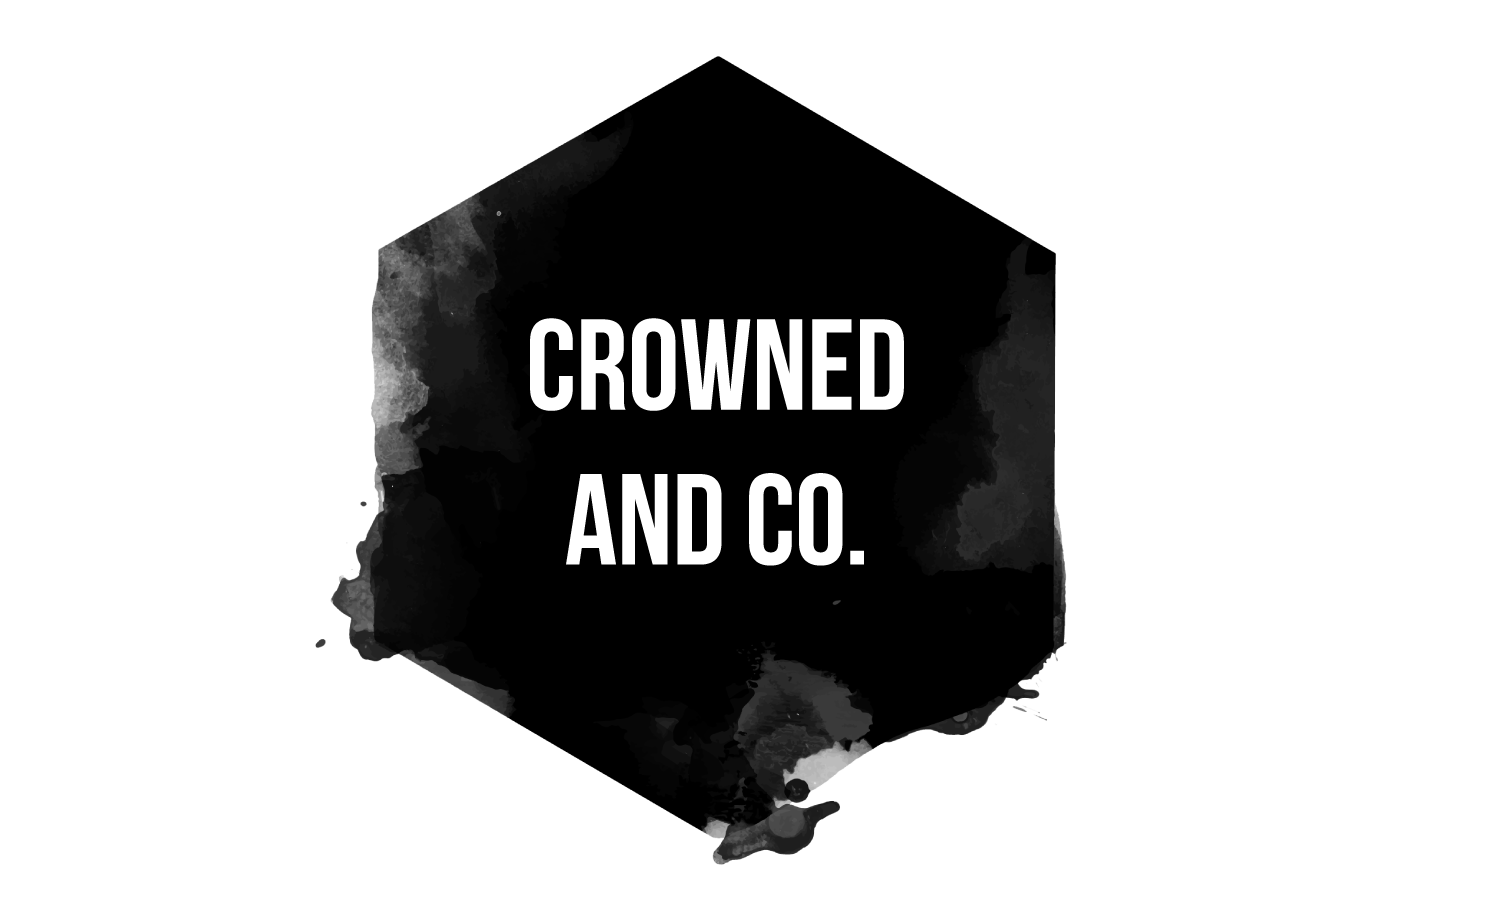 crowned and co button-01-01.png